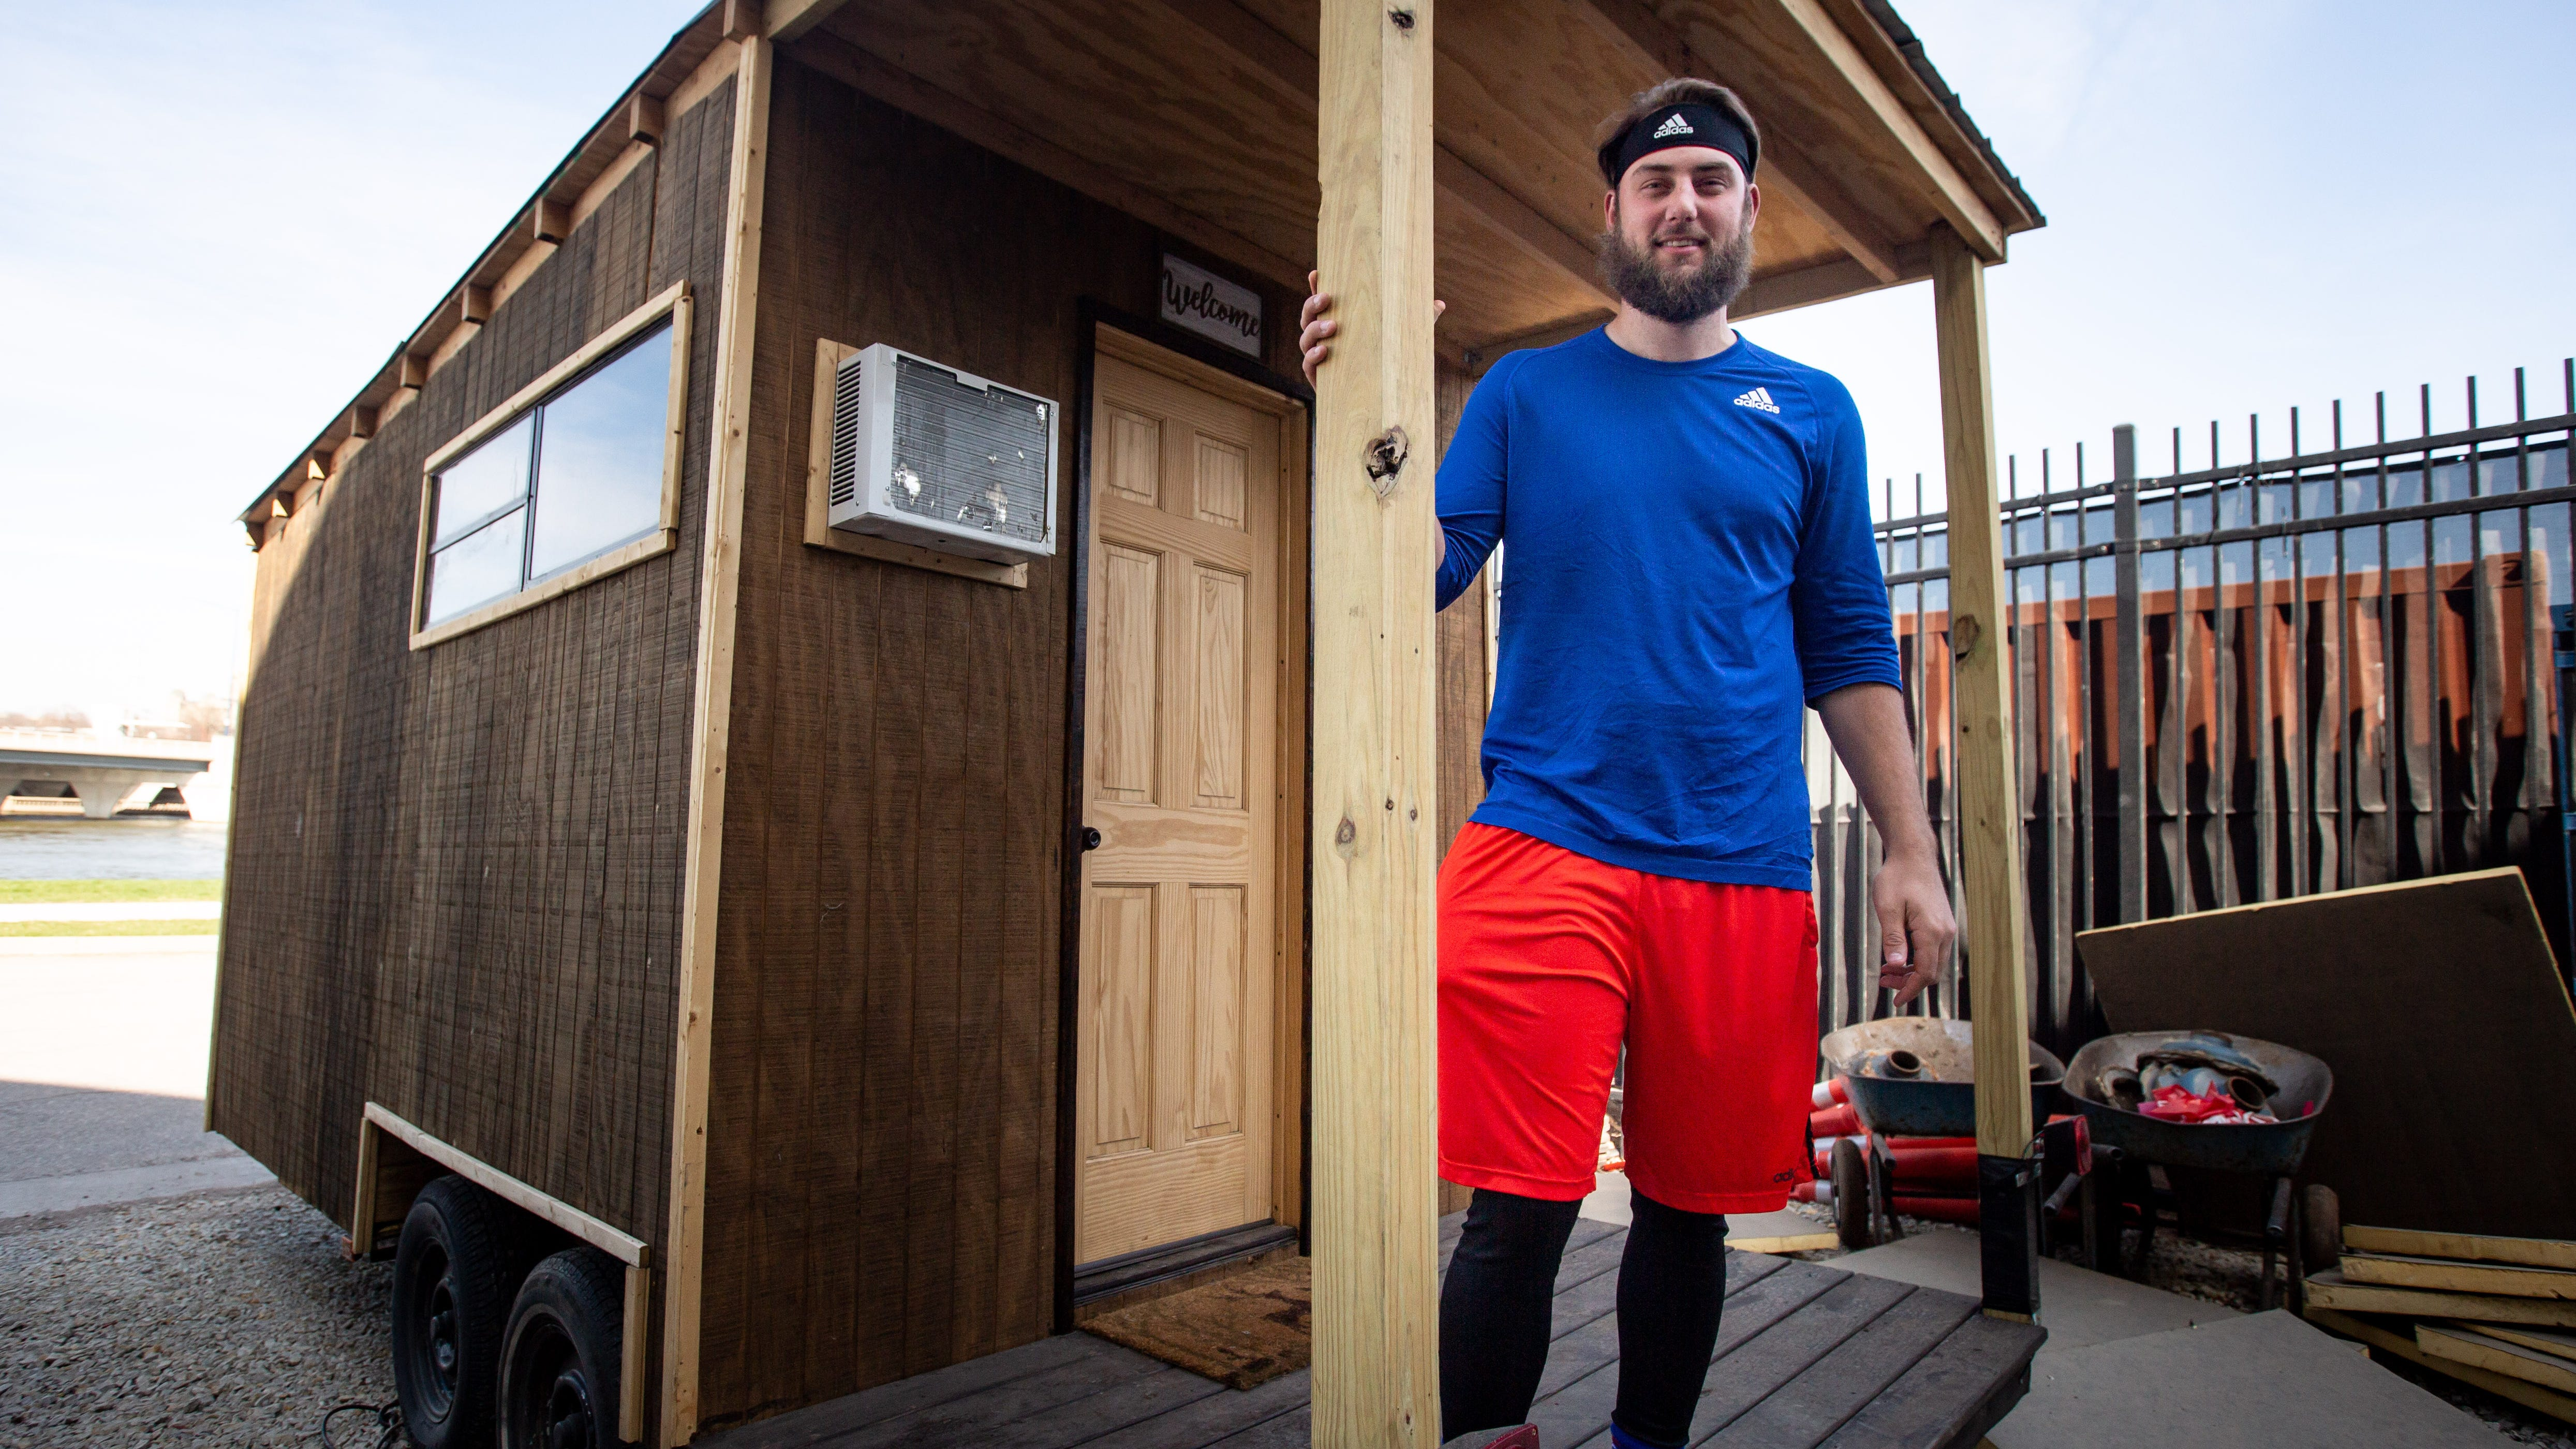 Iowa Cubs pitcher builds tiny house for baseball season